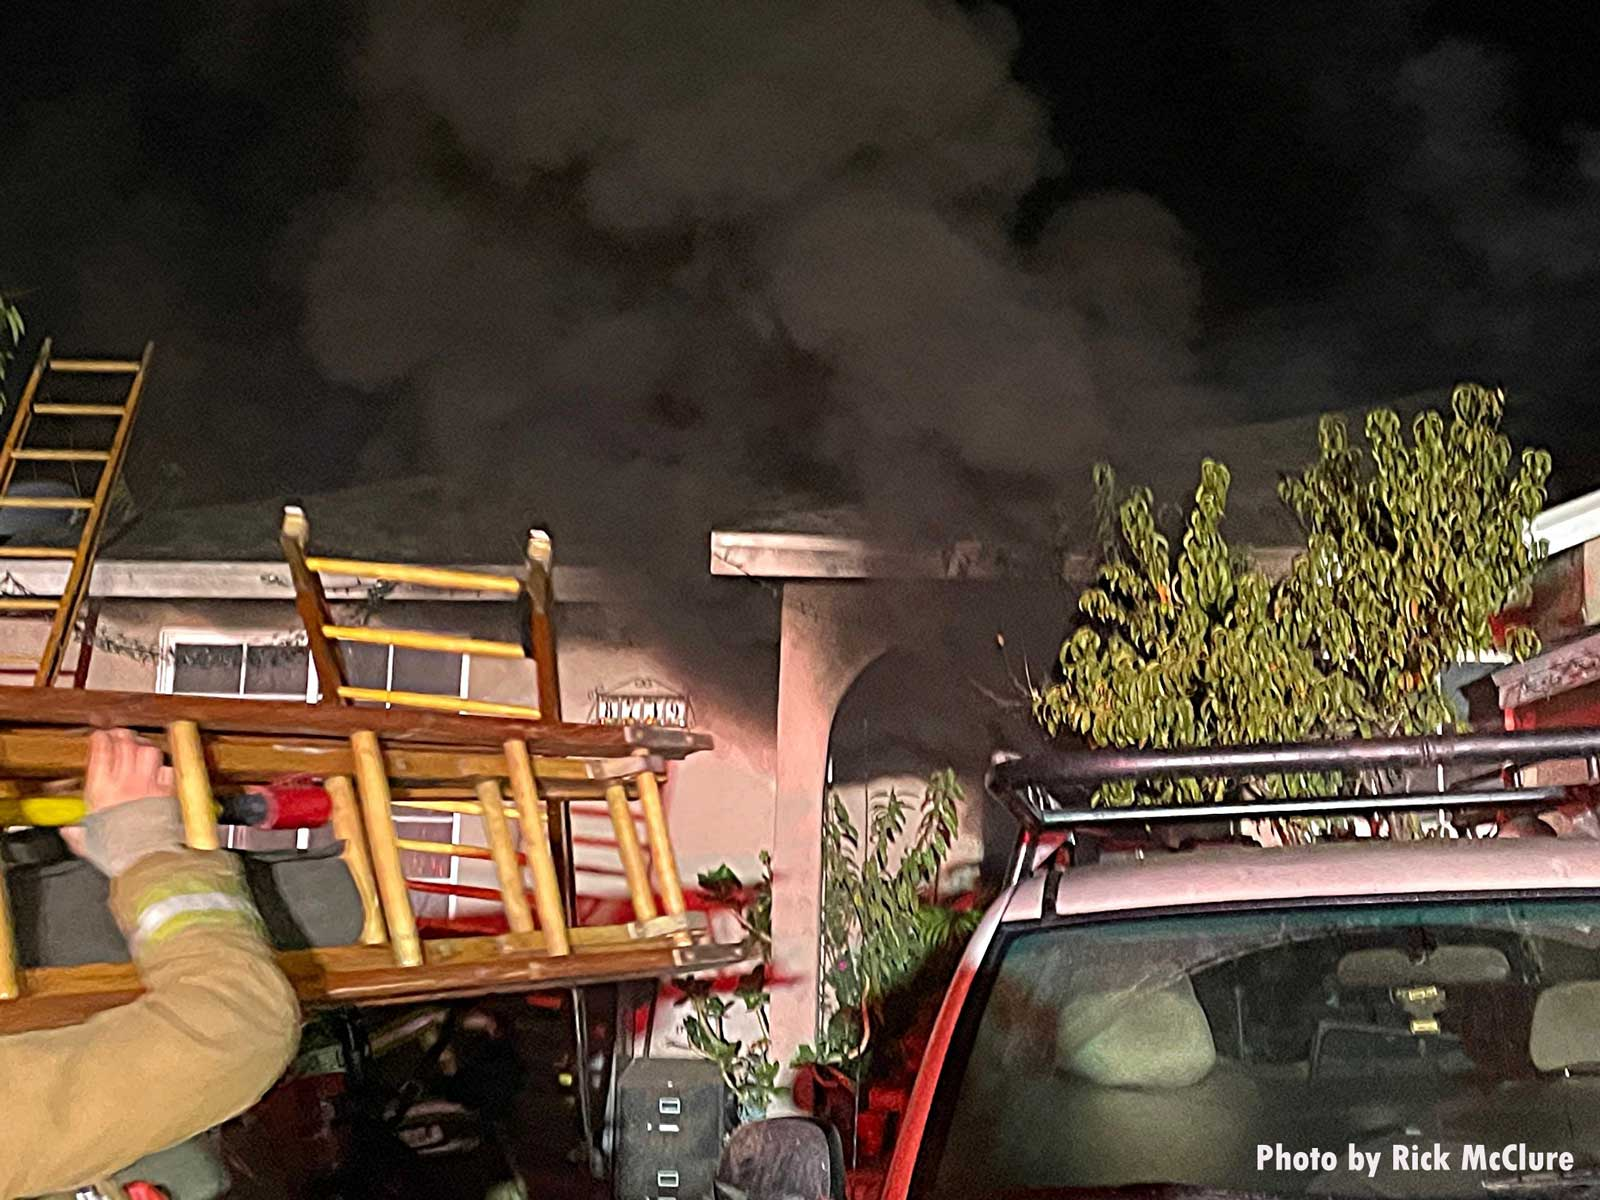 Thick black smoke from house fire with firefighter carrying a ladder